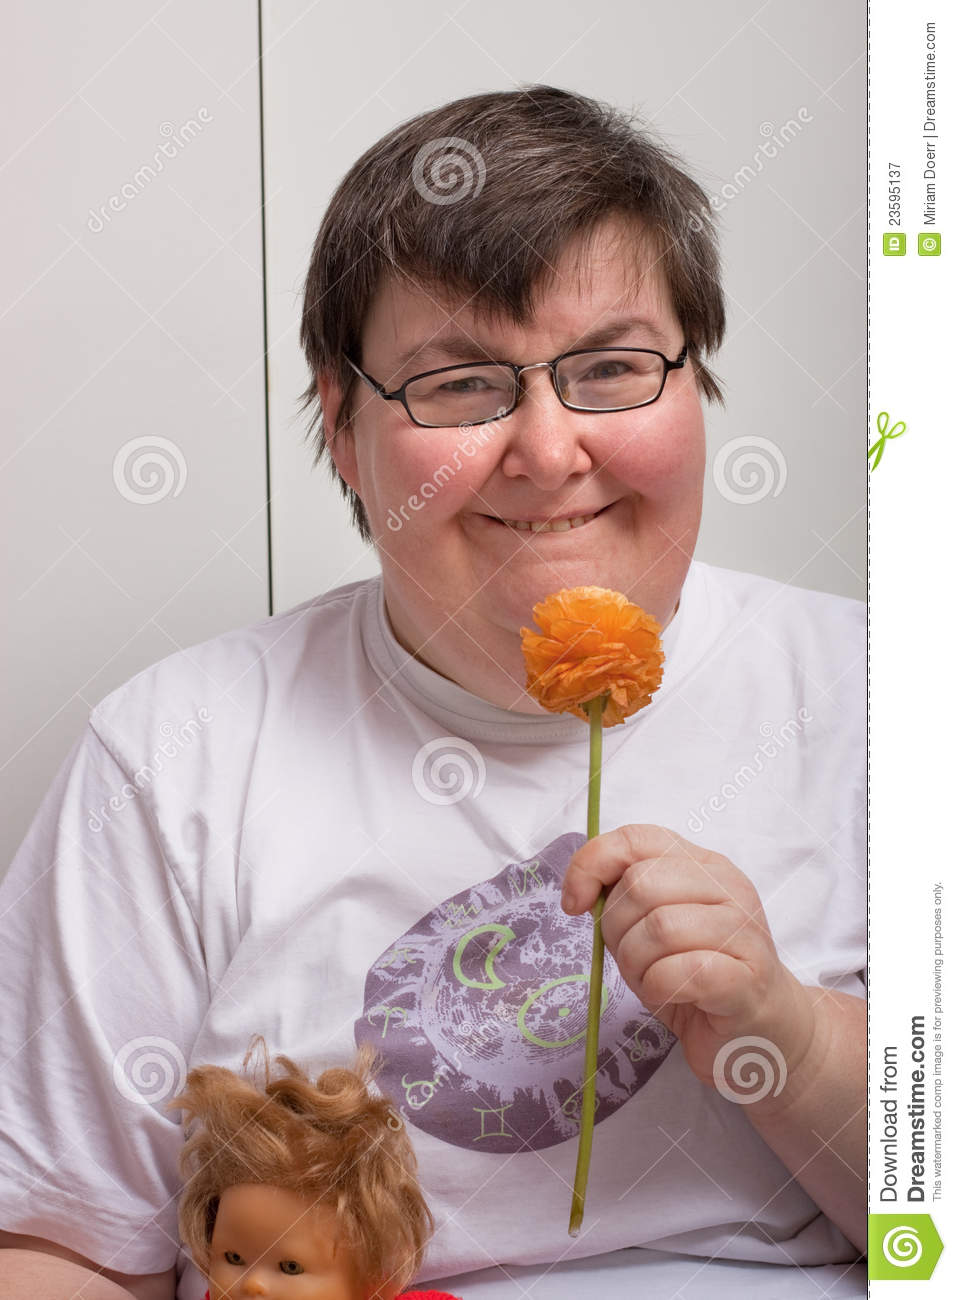 Mentally Disabled Woman With Flower Royalty Free Stock ...